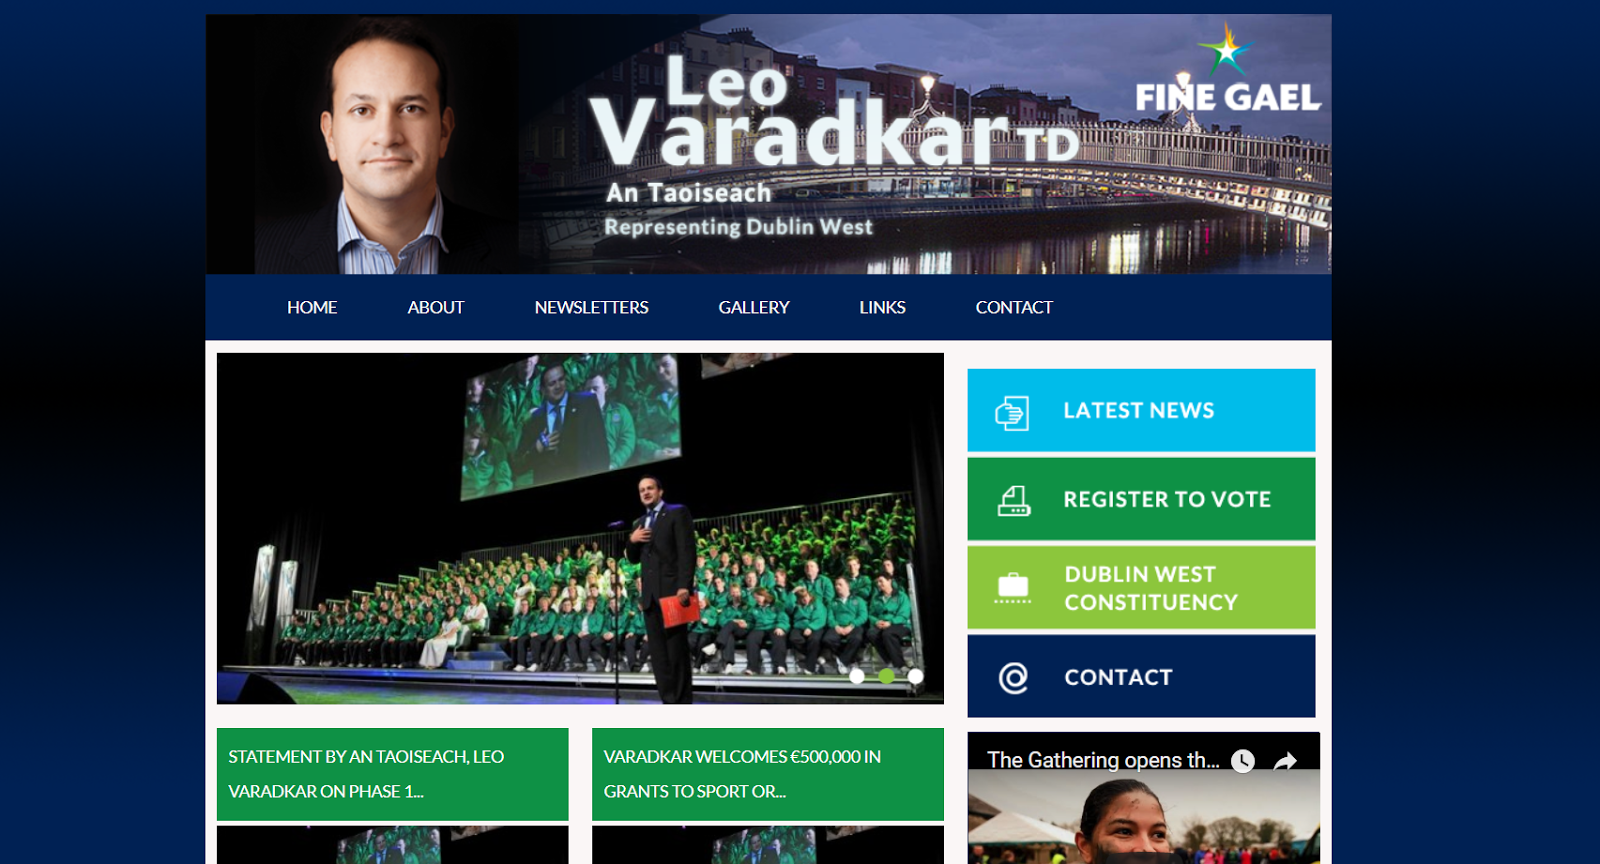 Leo Varadkar's website.